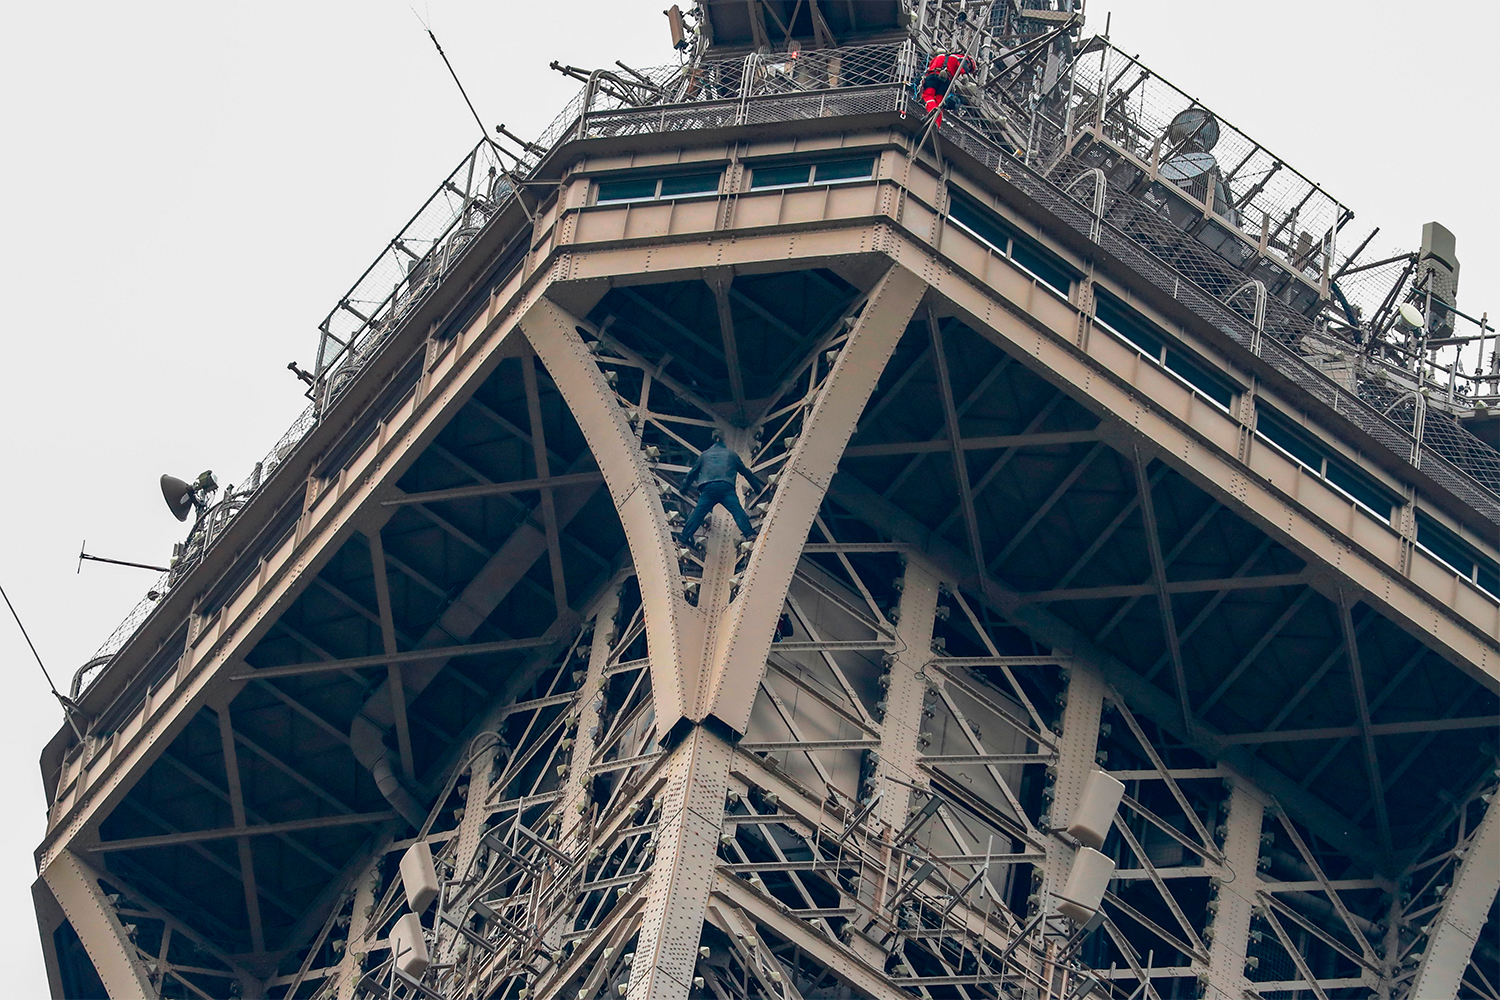 Climber Scales Side of Eiffel Tower